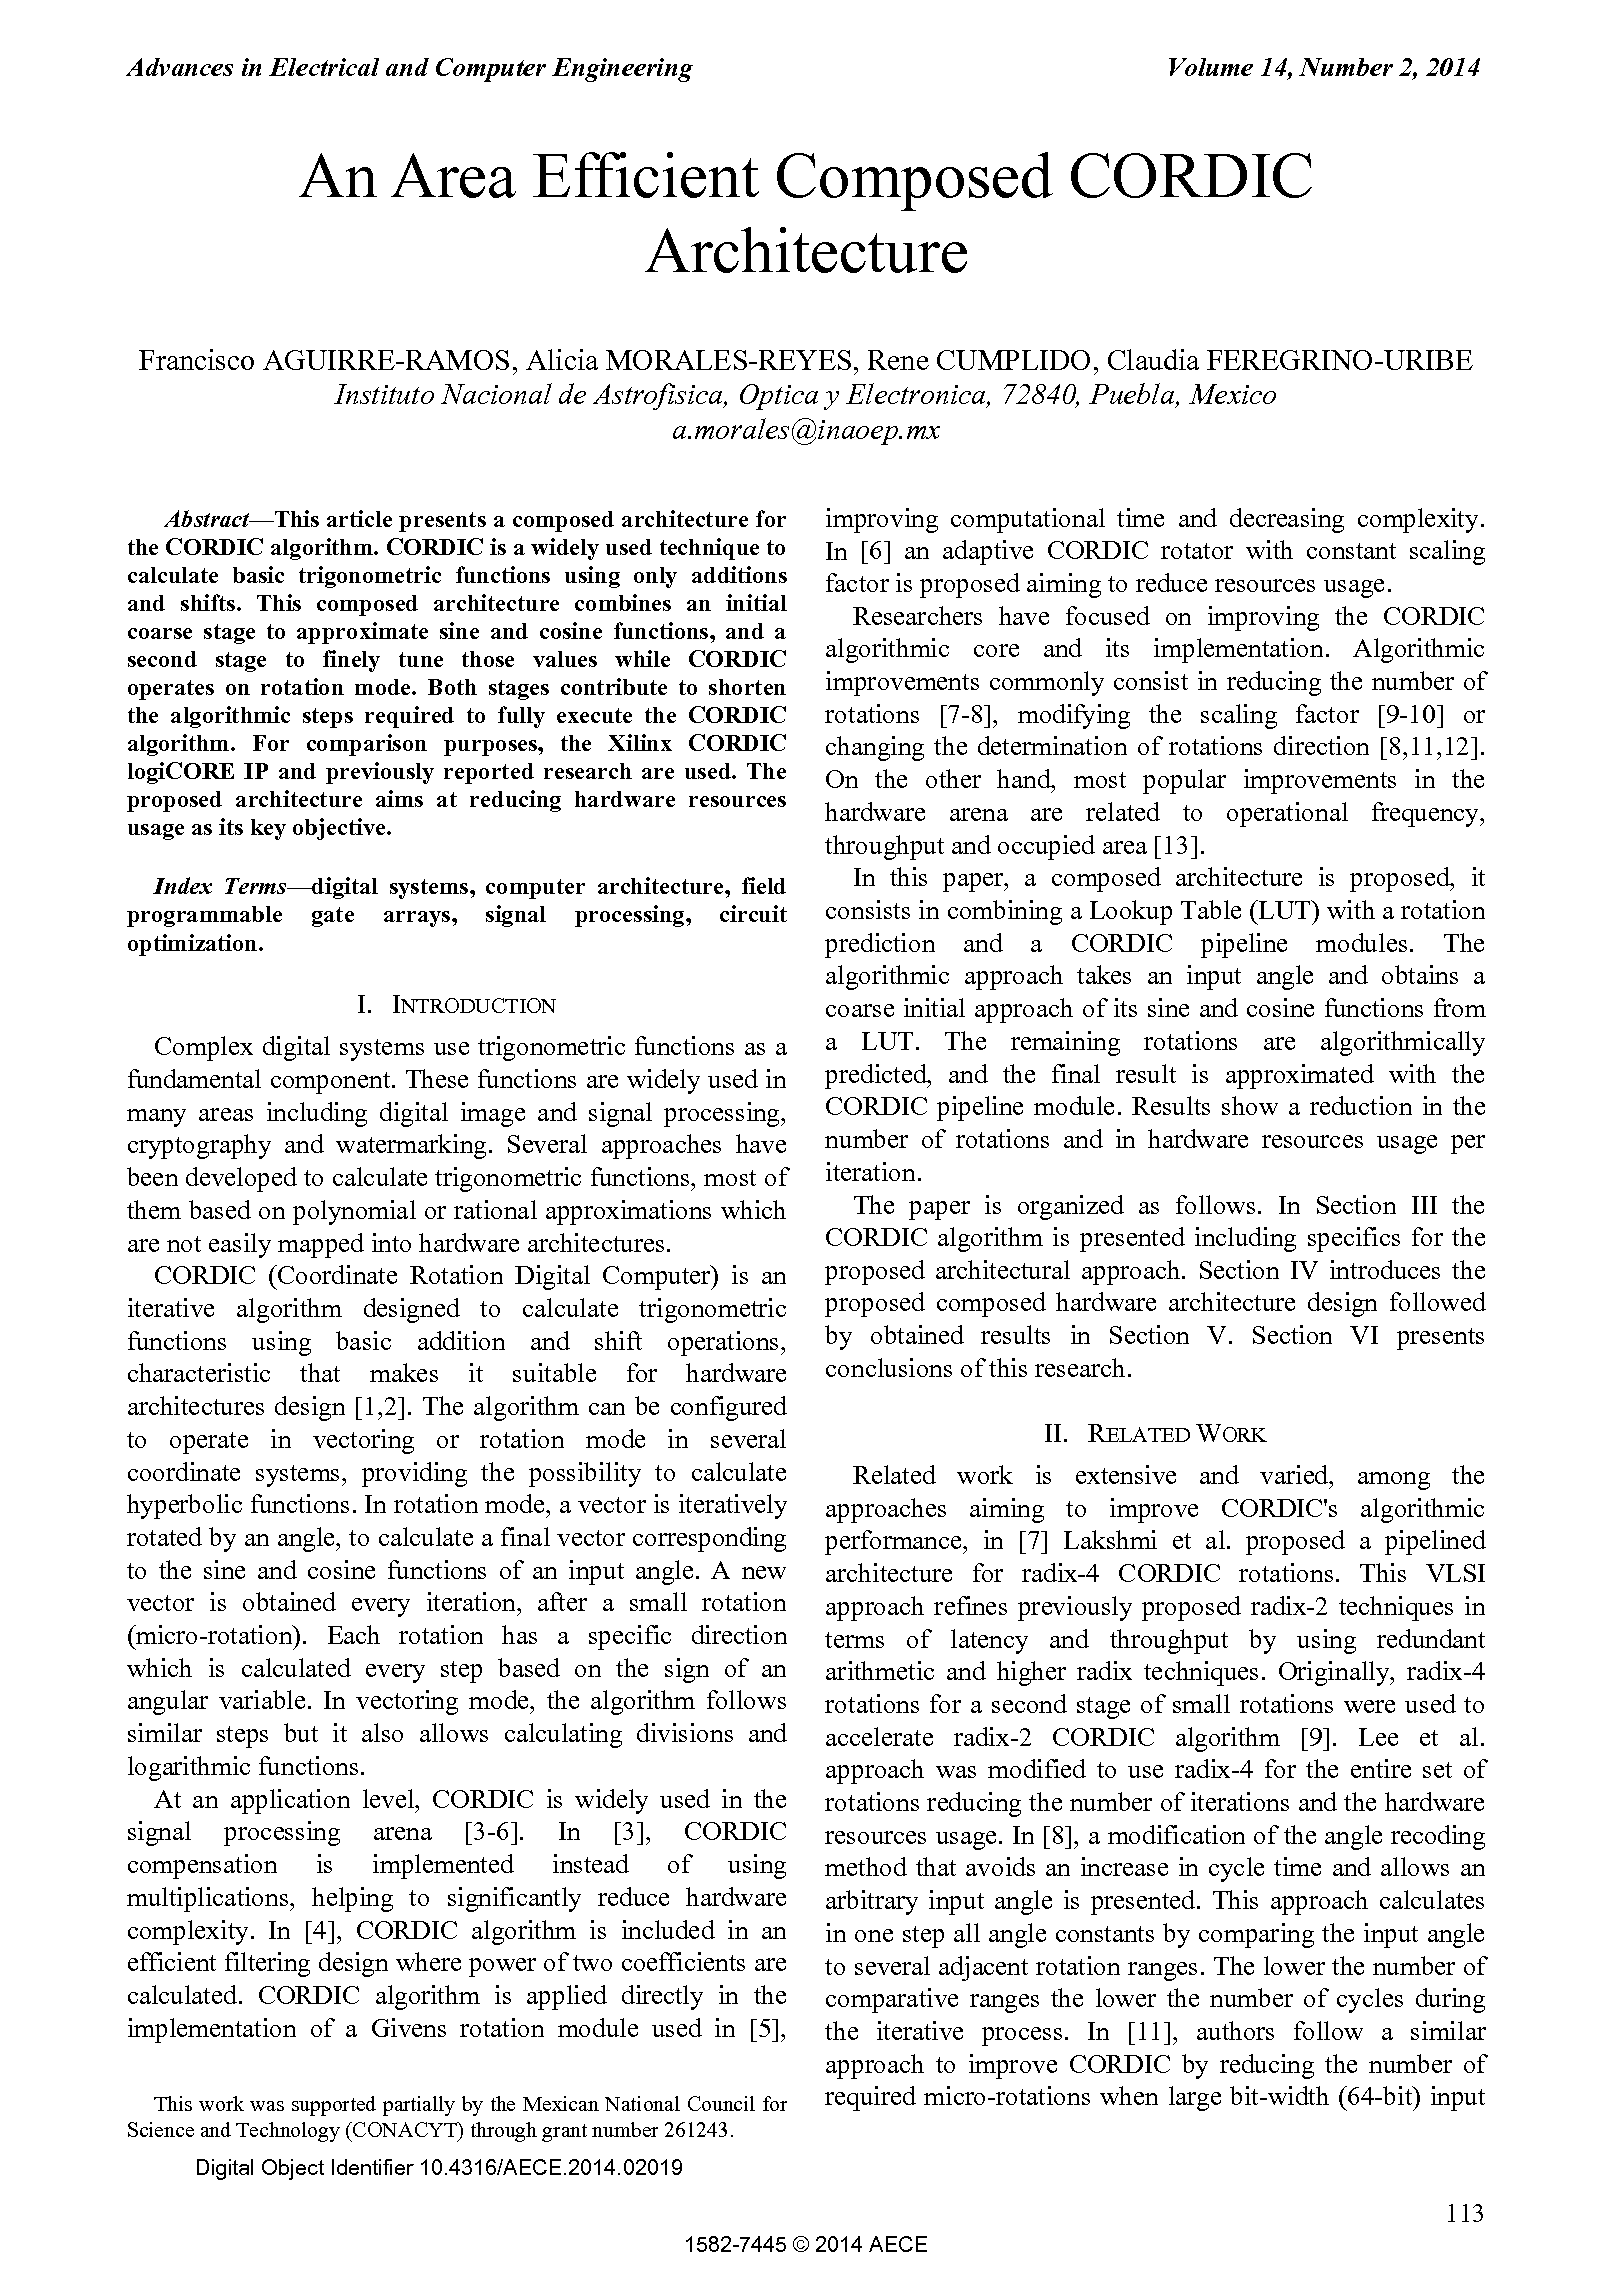 PDF Quickview for paper with DOI:10.4316/AECE.2014.02019